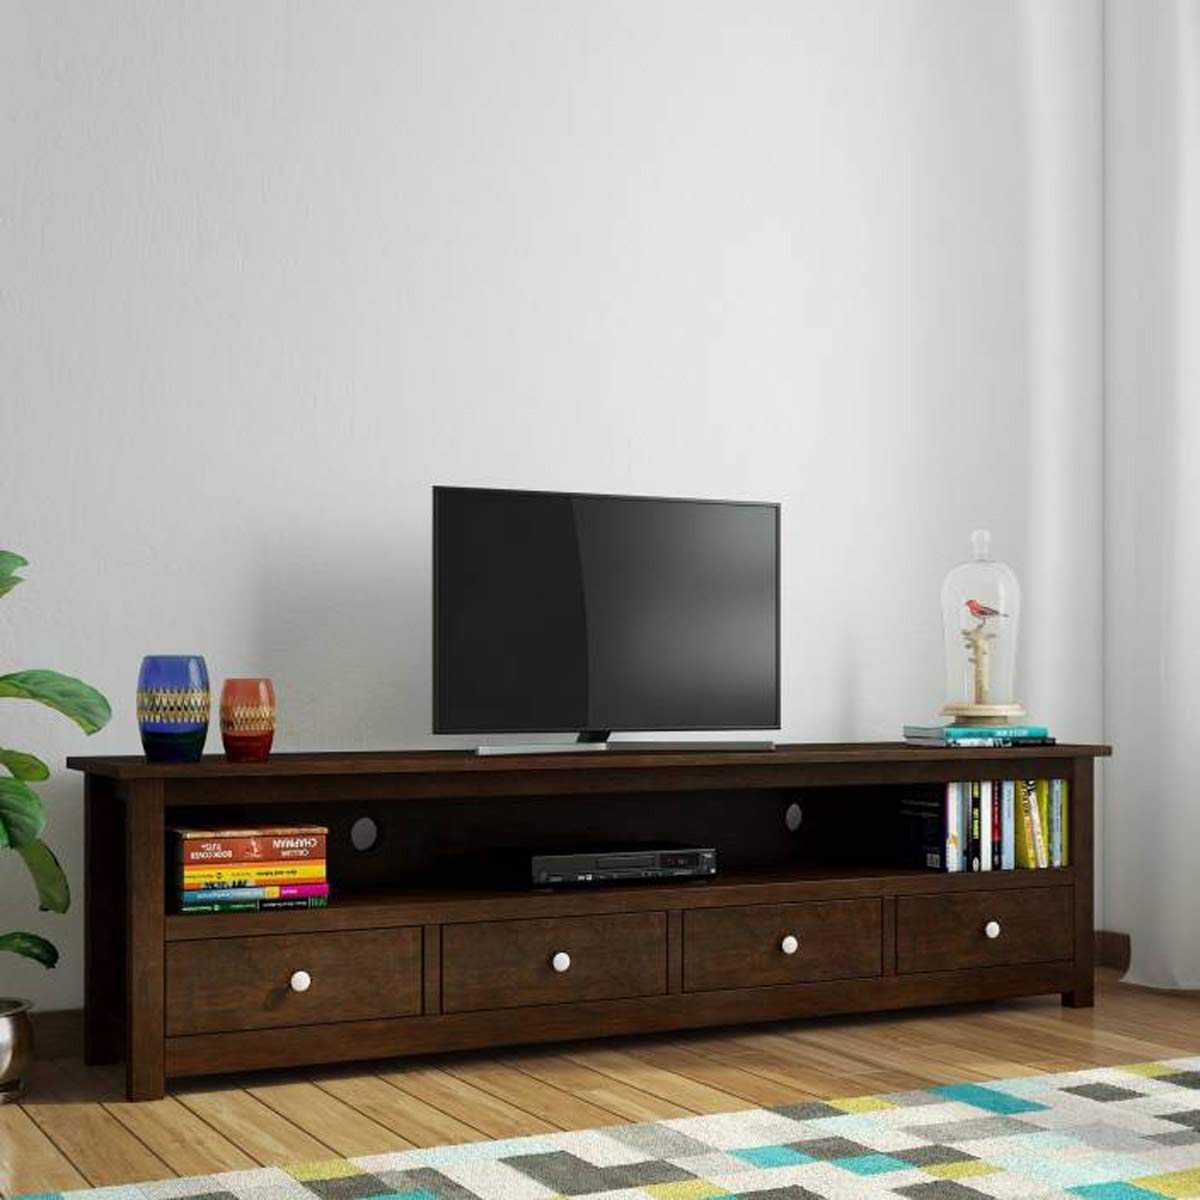 Miklen  TV Unit Cabinet Entertainment Stand (Dark Walnut Finish)